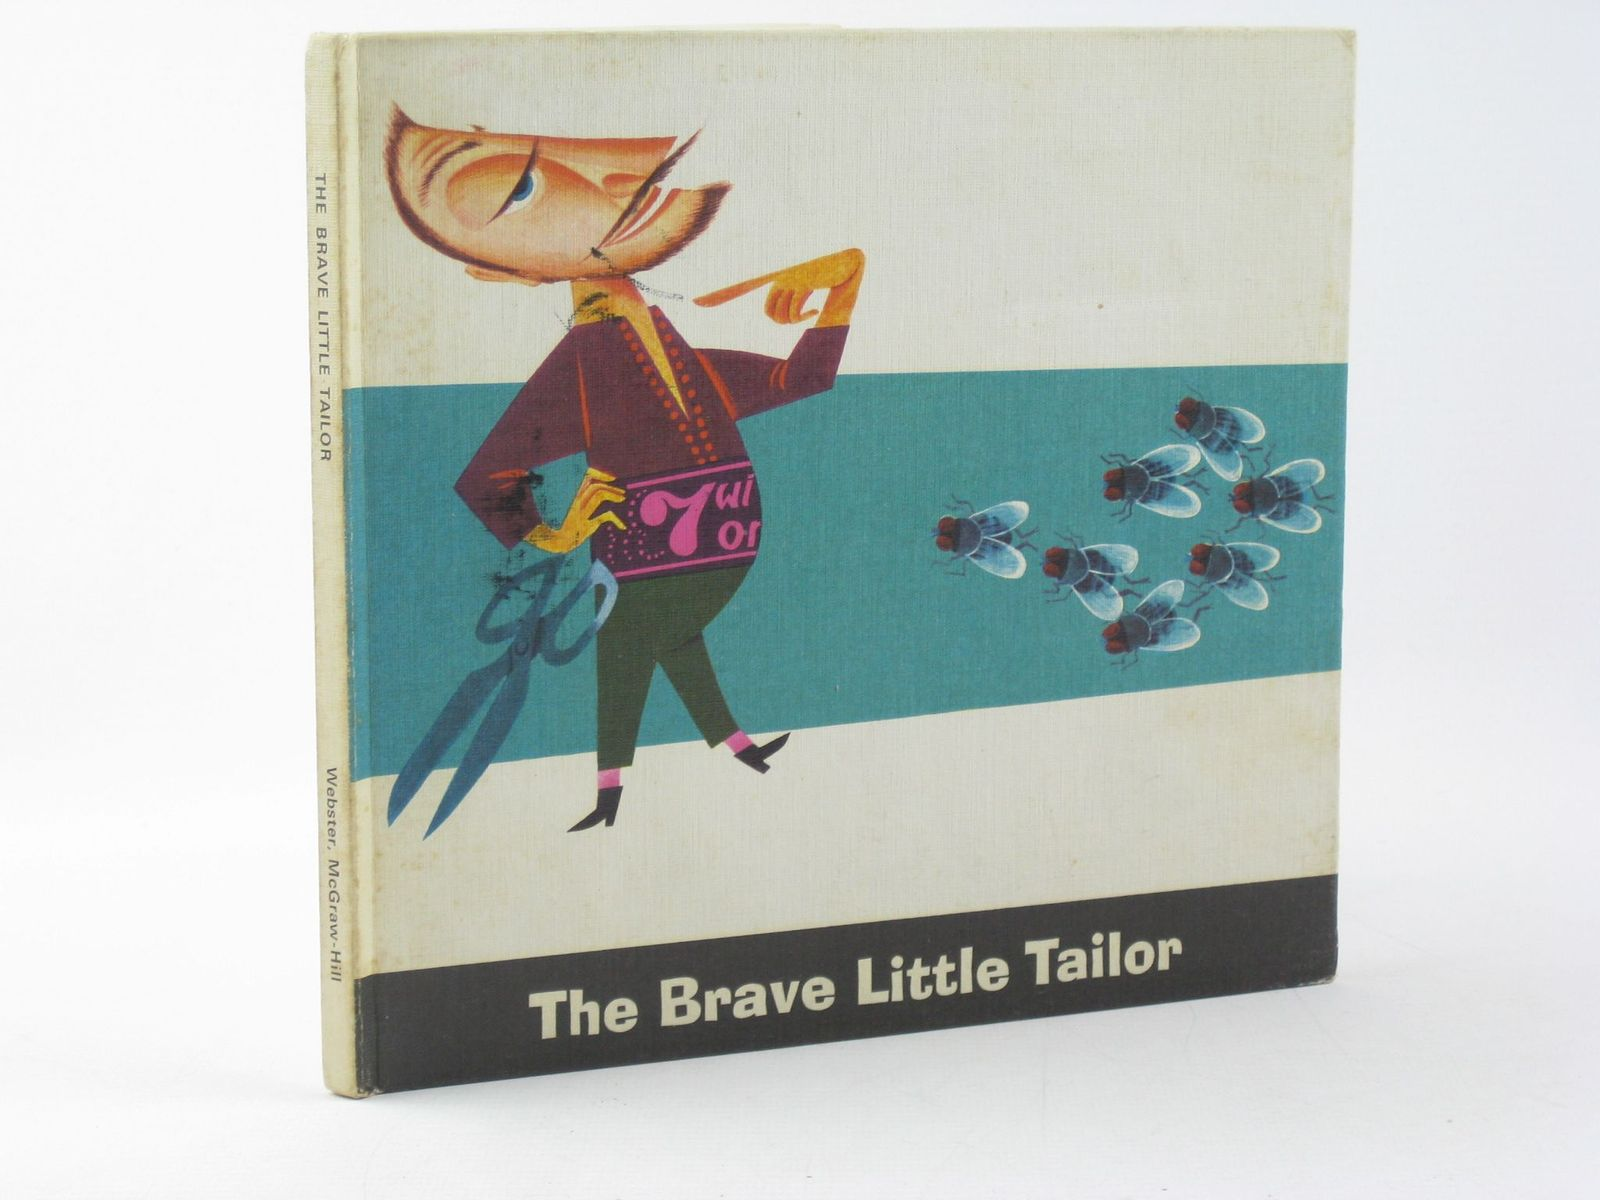 Photo of THE BRAVE LITTLE TAILOR written by Grimm, Brothers<br />Claus, Audrey illustrated by Probst, E. published by Mcgraw-Hill Publishing Company Ltd. (STOCK CODE: 1311587)  for sale by Stella & Rose's Books